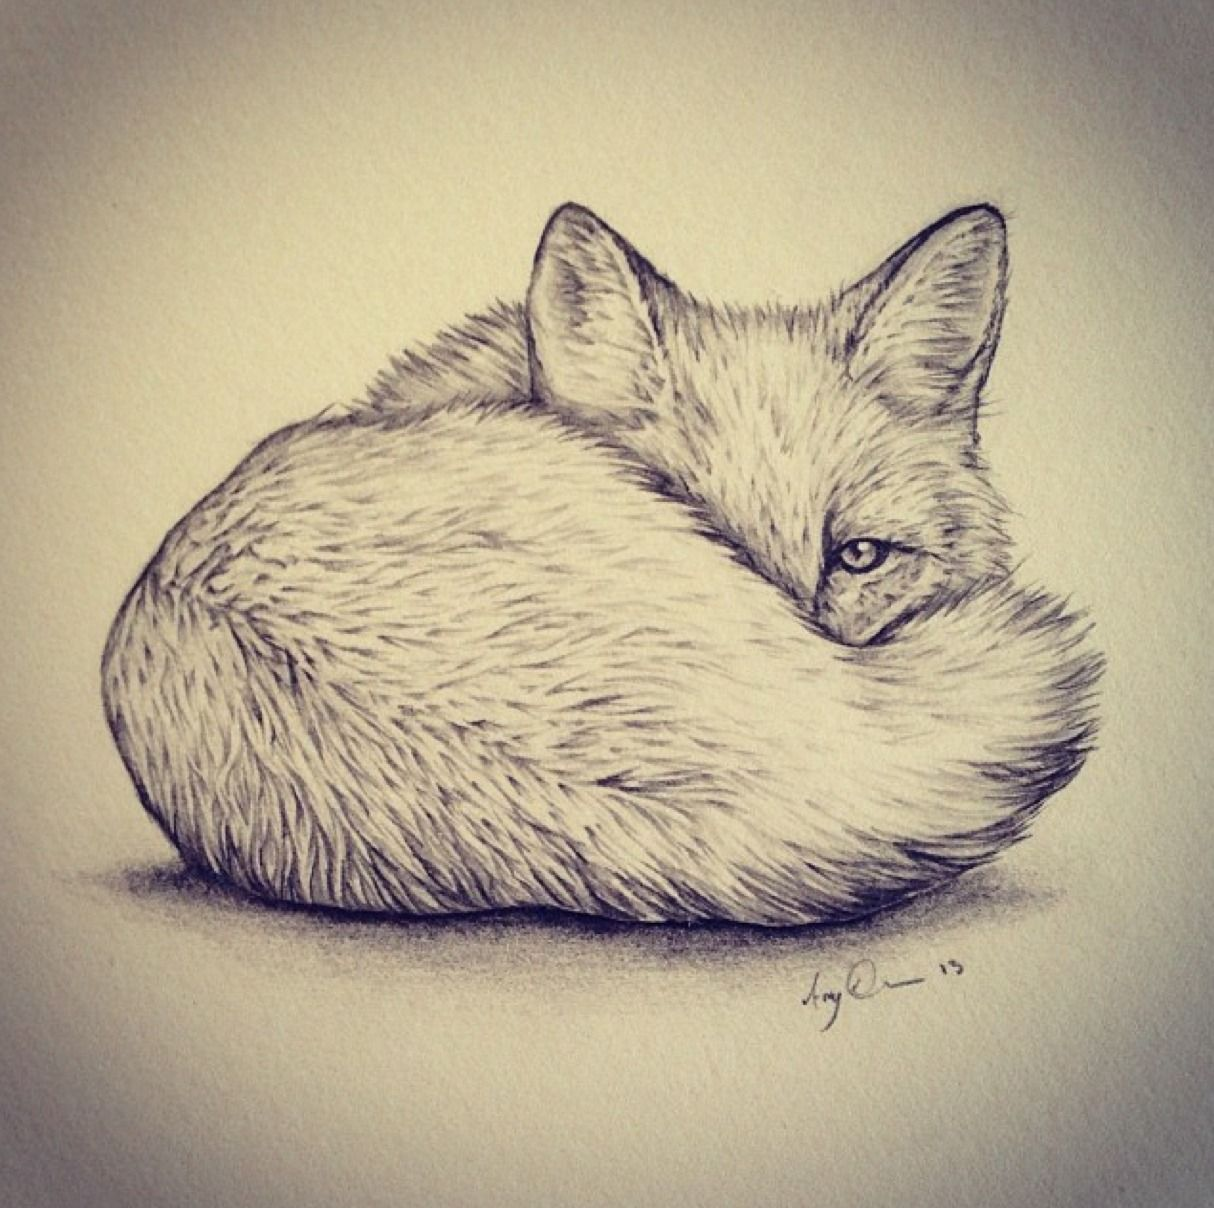 1214x1208 I really want a fox tattoo on my ribs one day. And it would